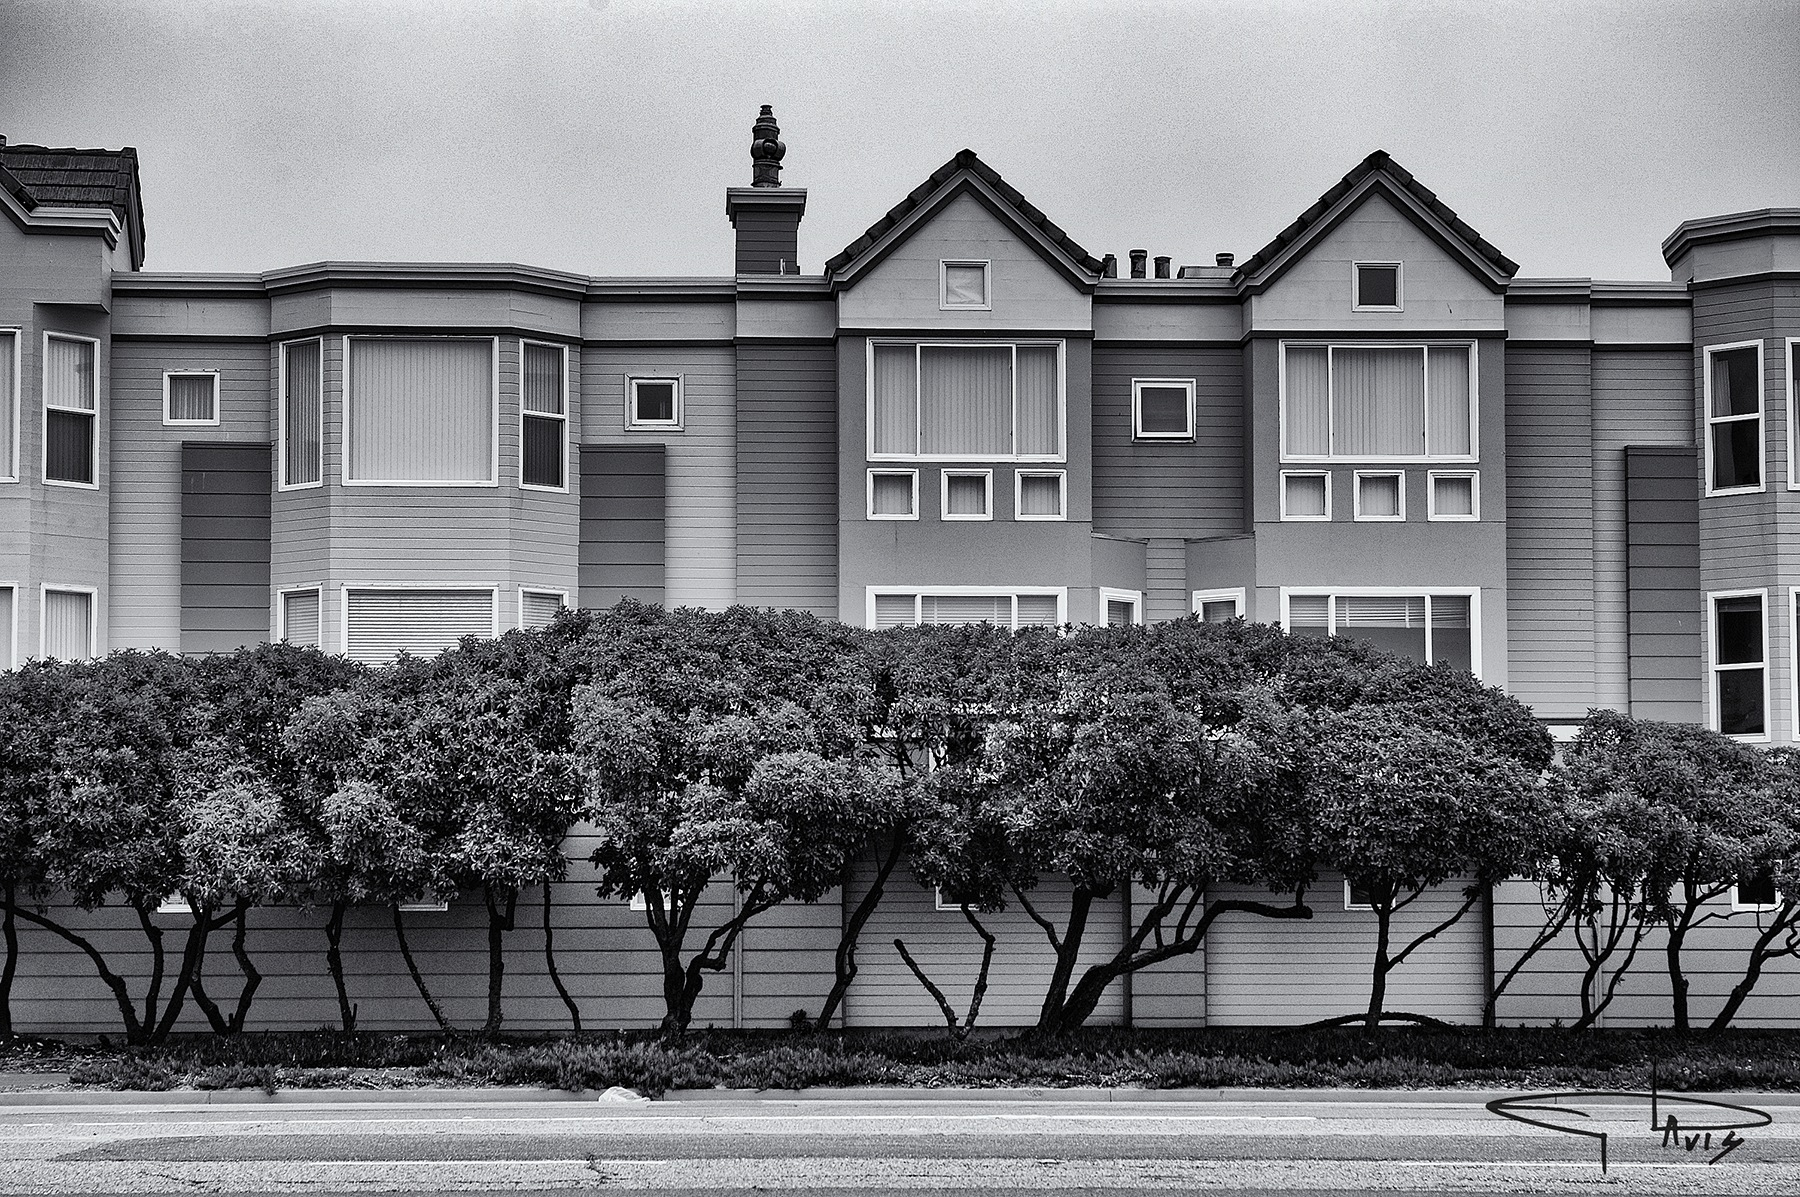 Photo in Architecture #inspiration #motivation #teachingmoment #seeingbeyondseeing #art #digitalart #photography #michaelddavis #thedailychalkboard #blackandwhite #houses #trees #juxtaposition #perfection #symmetry